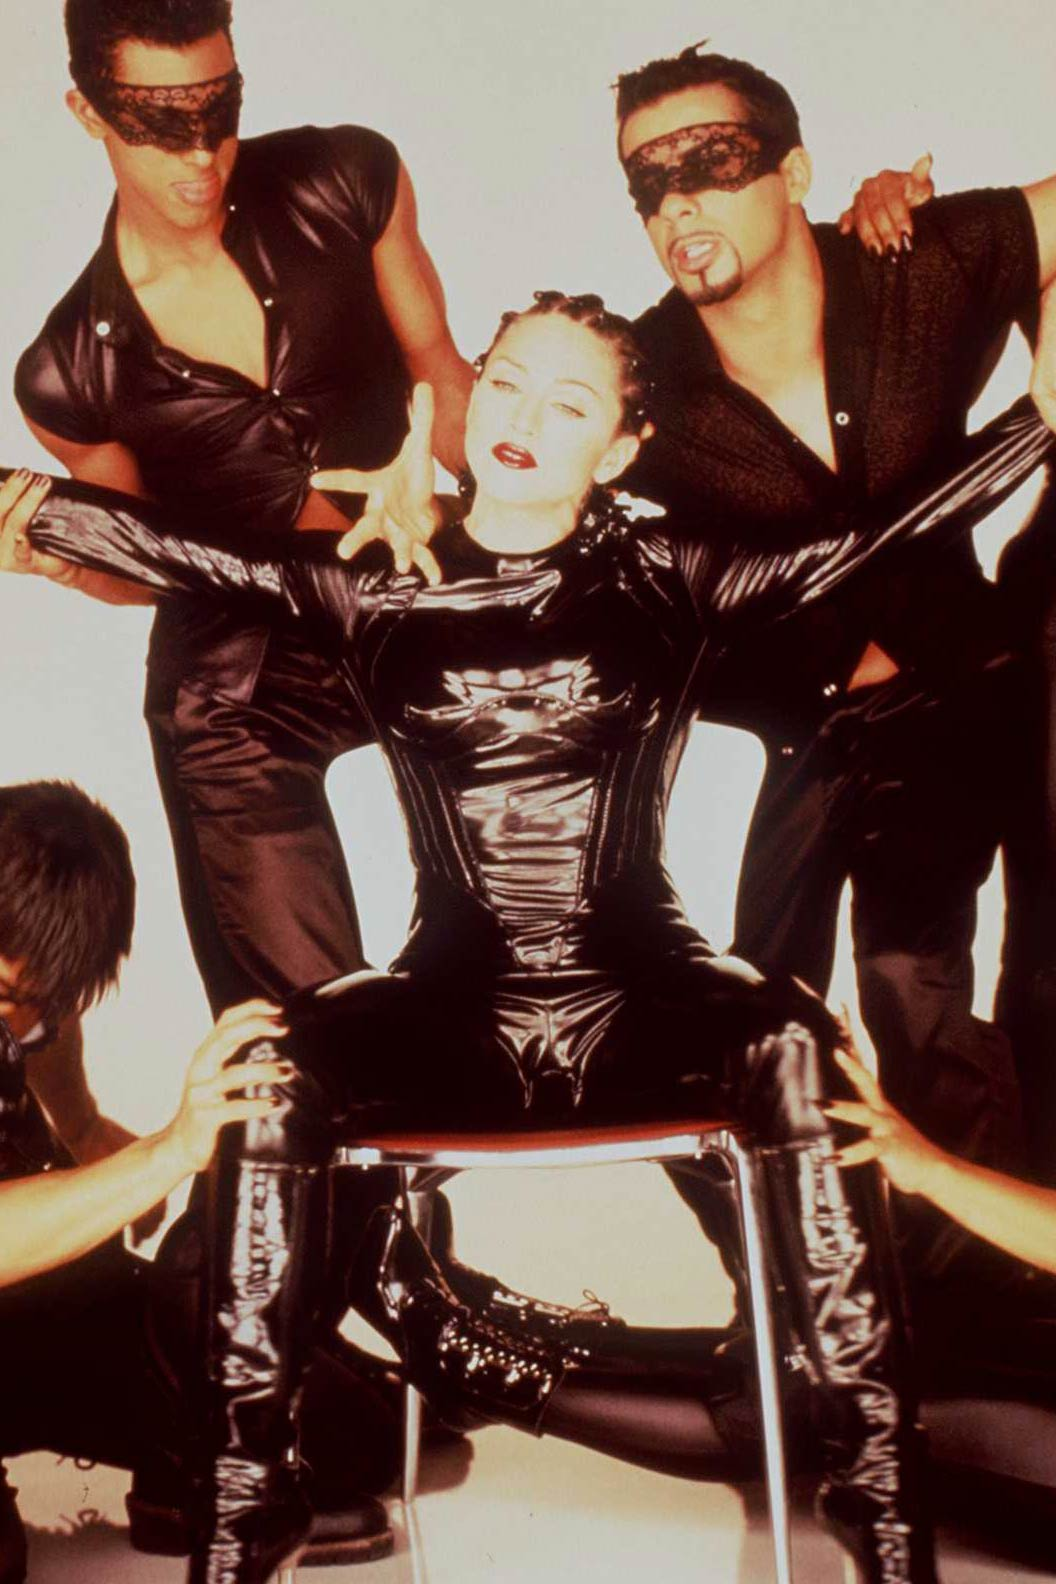 Madonna in her music video for 'Human Nature' in 1995.